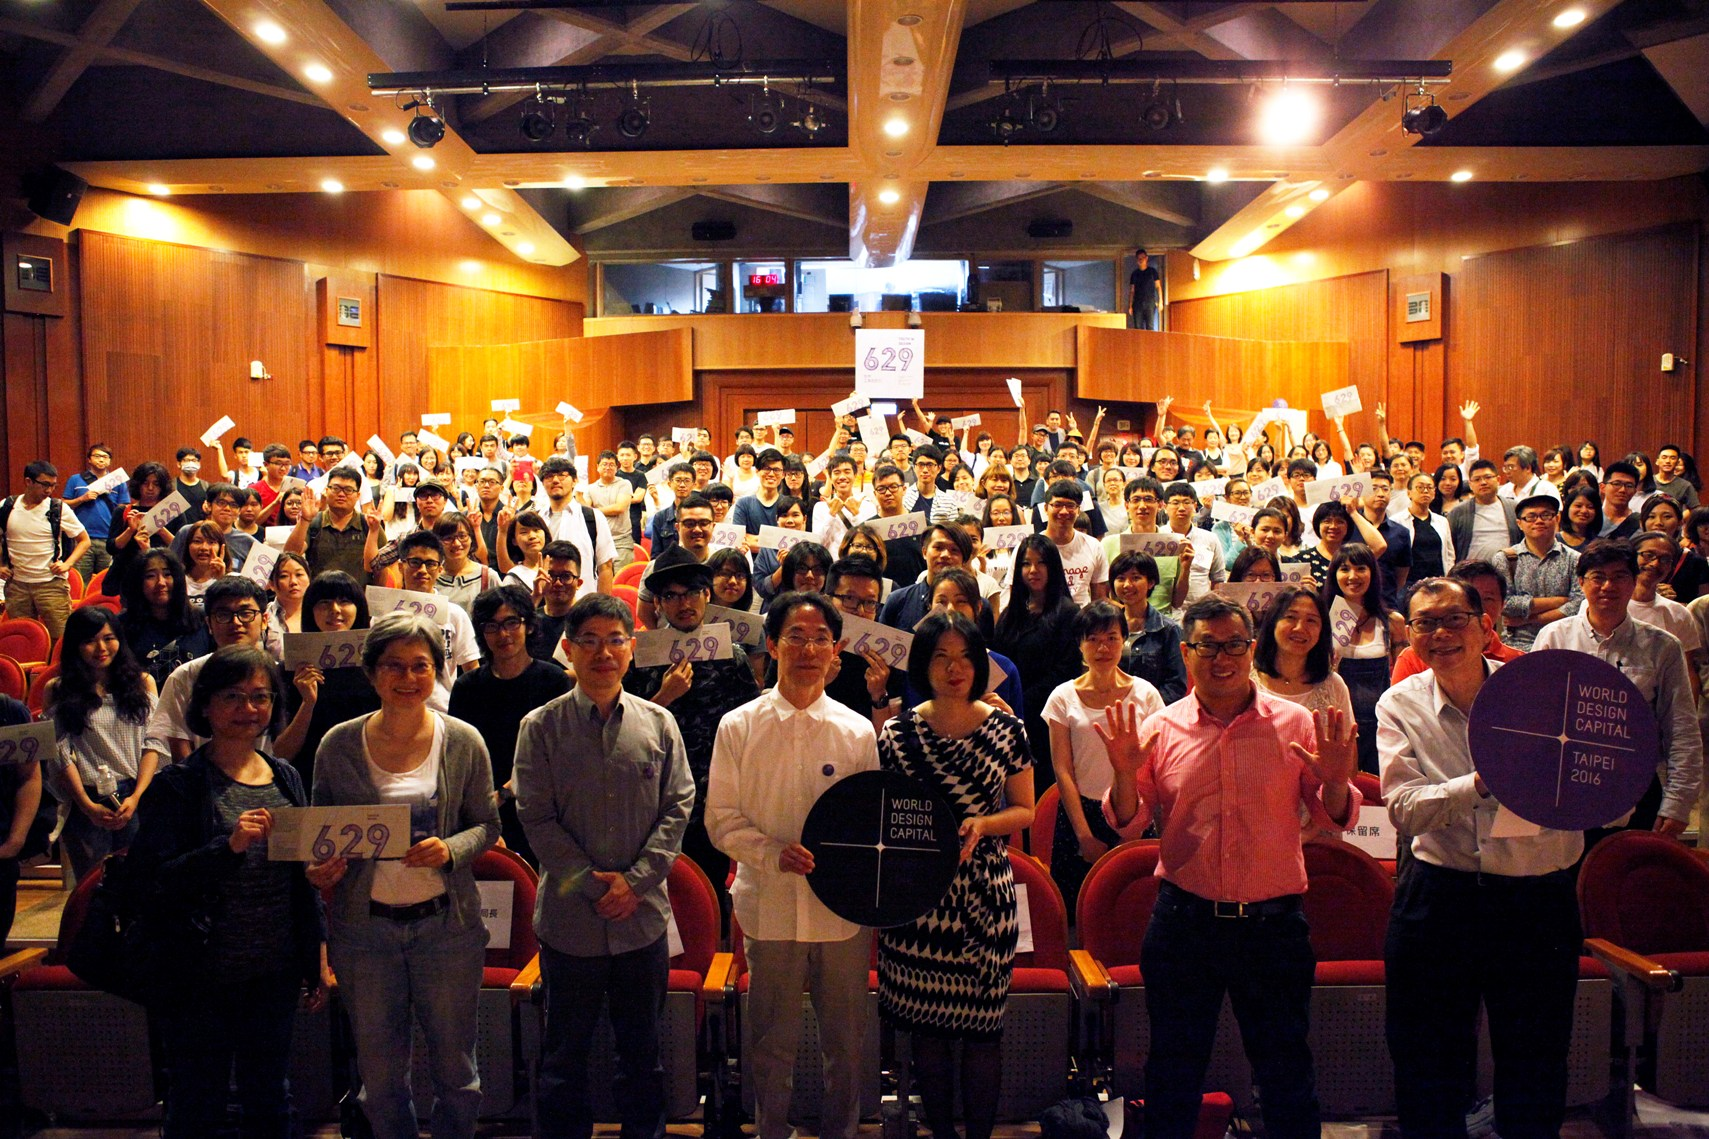 GK Design group photo with Taipei citizens